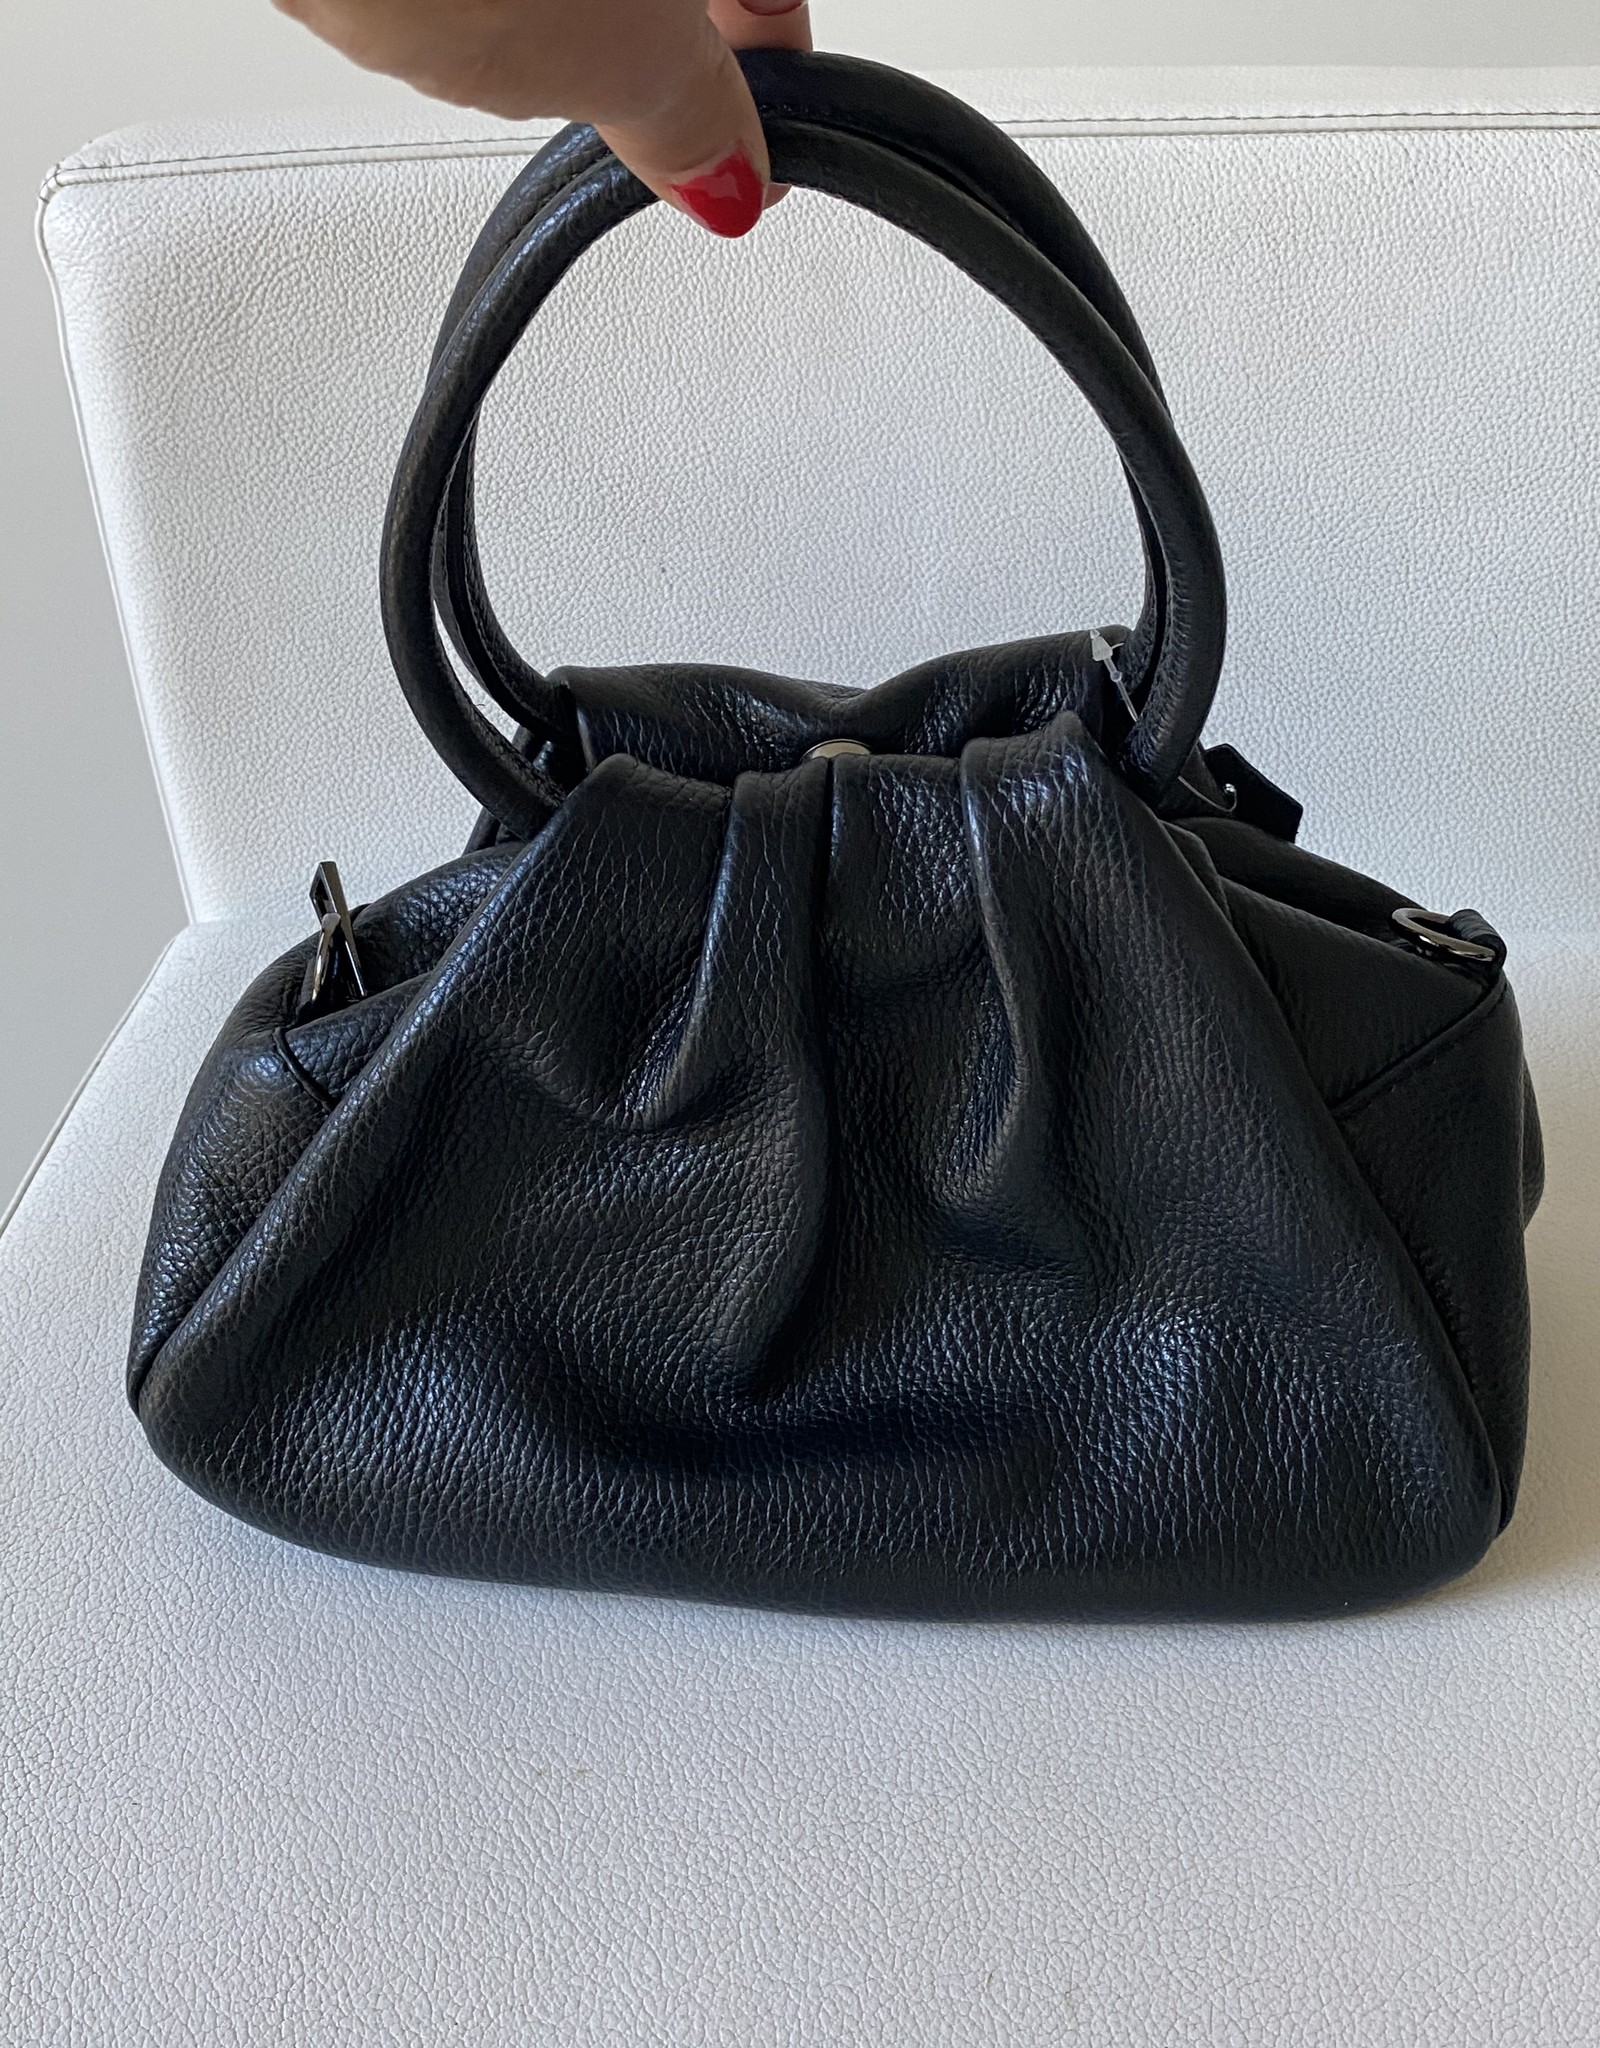 Giuliano Leather pouchbag with handles and long shoulderbelt.